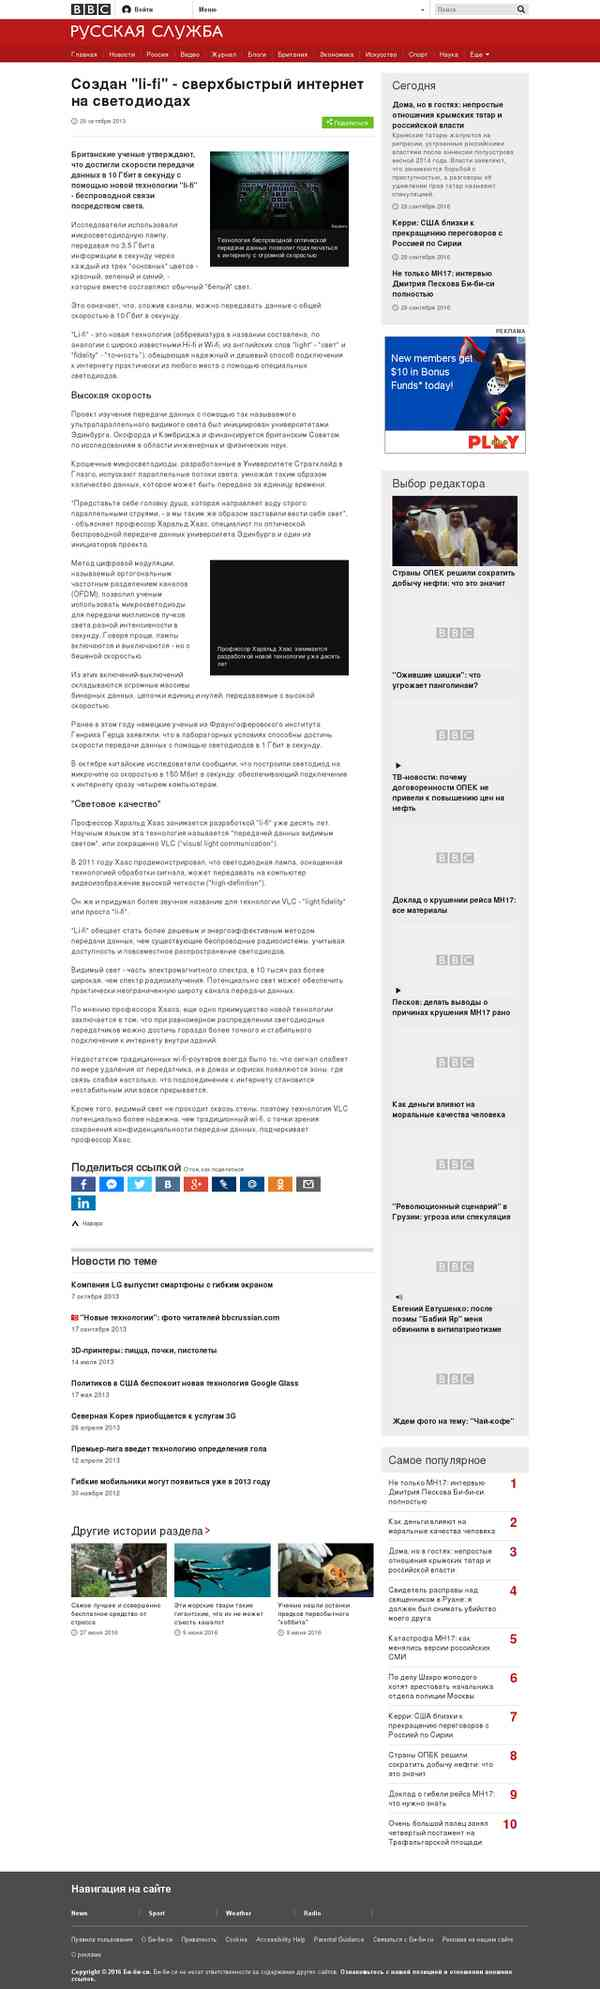 bbc.co.uk/russian/science/2013/10/131029_li_fi_technology.shtml